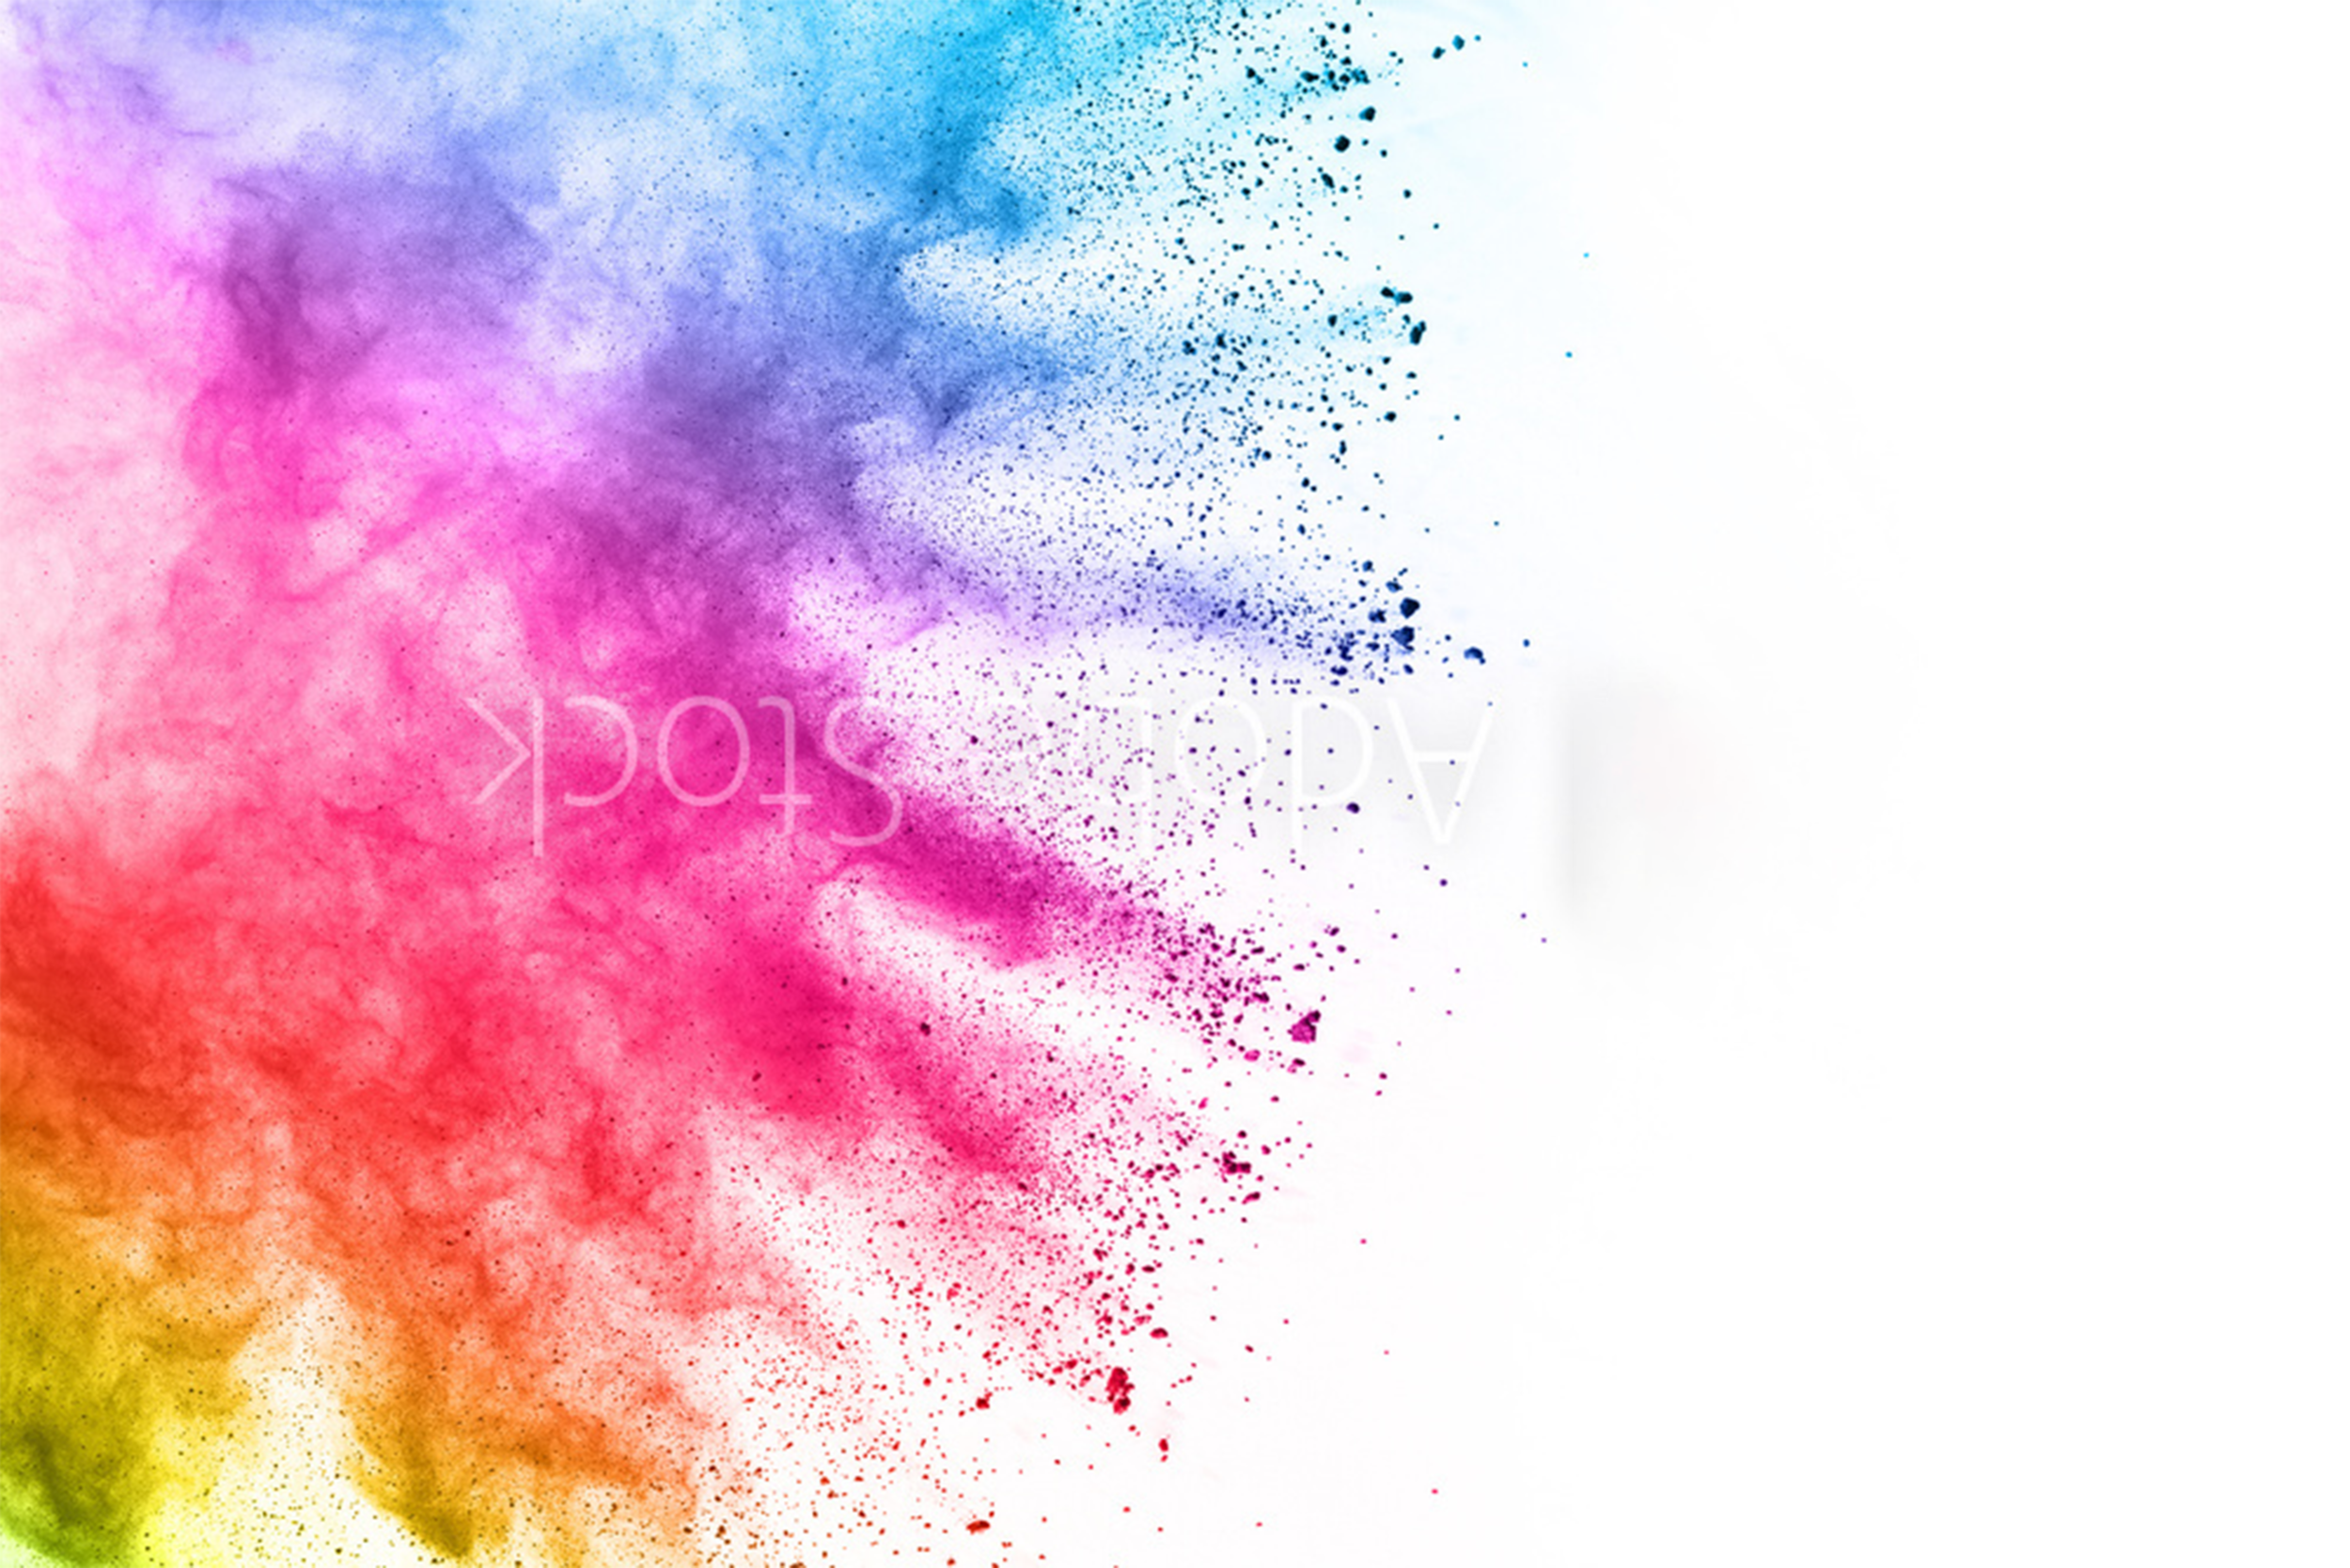 Colorful powder explosion on white background.png